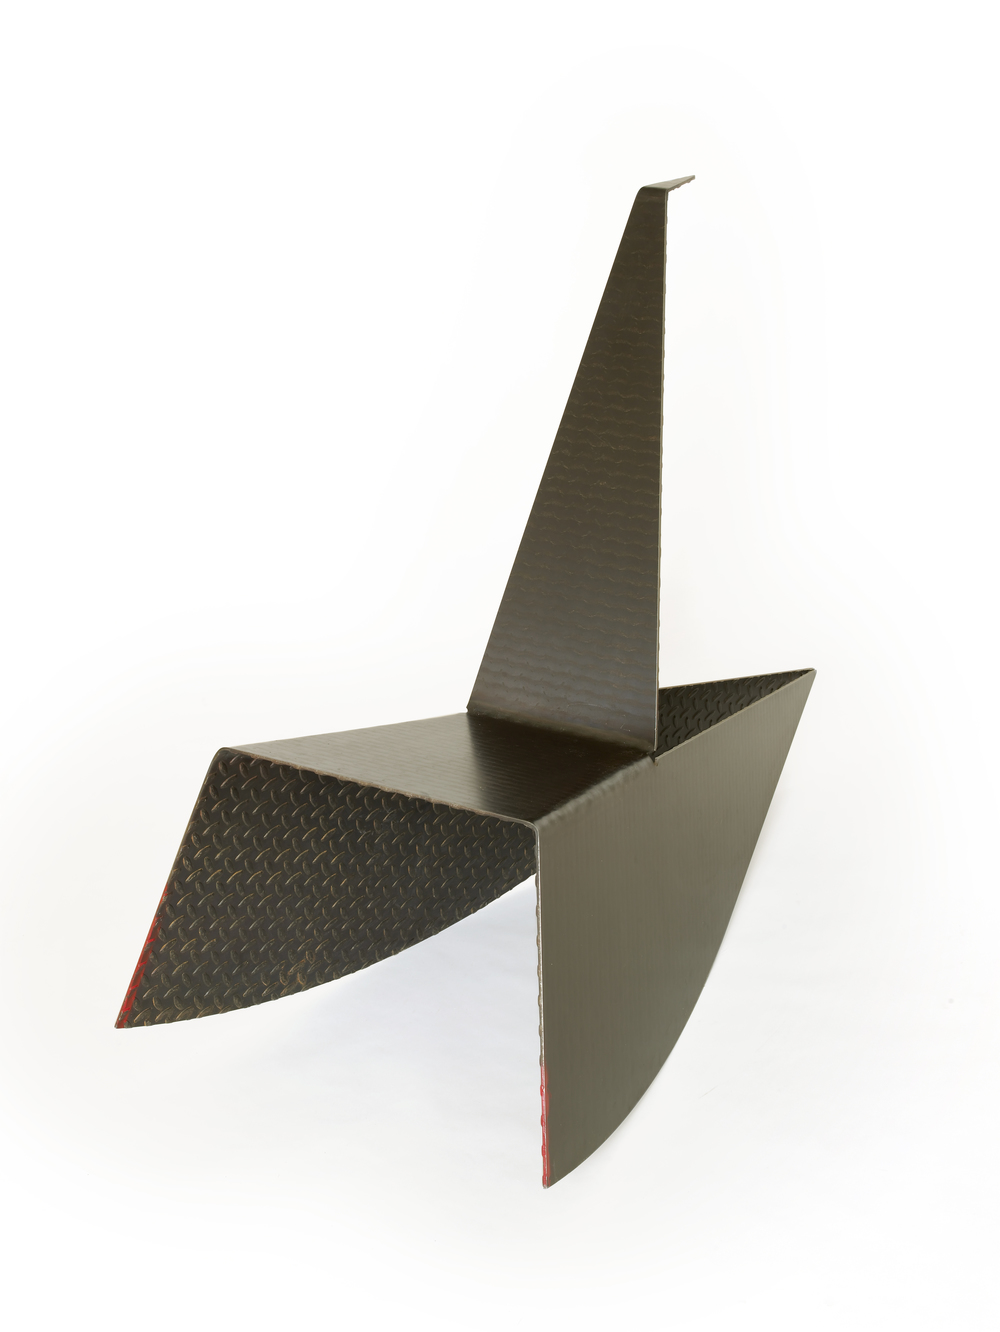 "Rocker    Gail Fredell,   1989/2014    36-1/2"" high x 24"" wide x 53"" long    3/16' diamond plate steel"